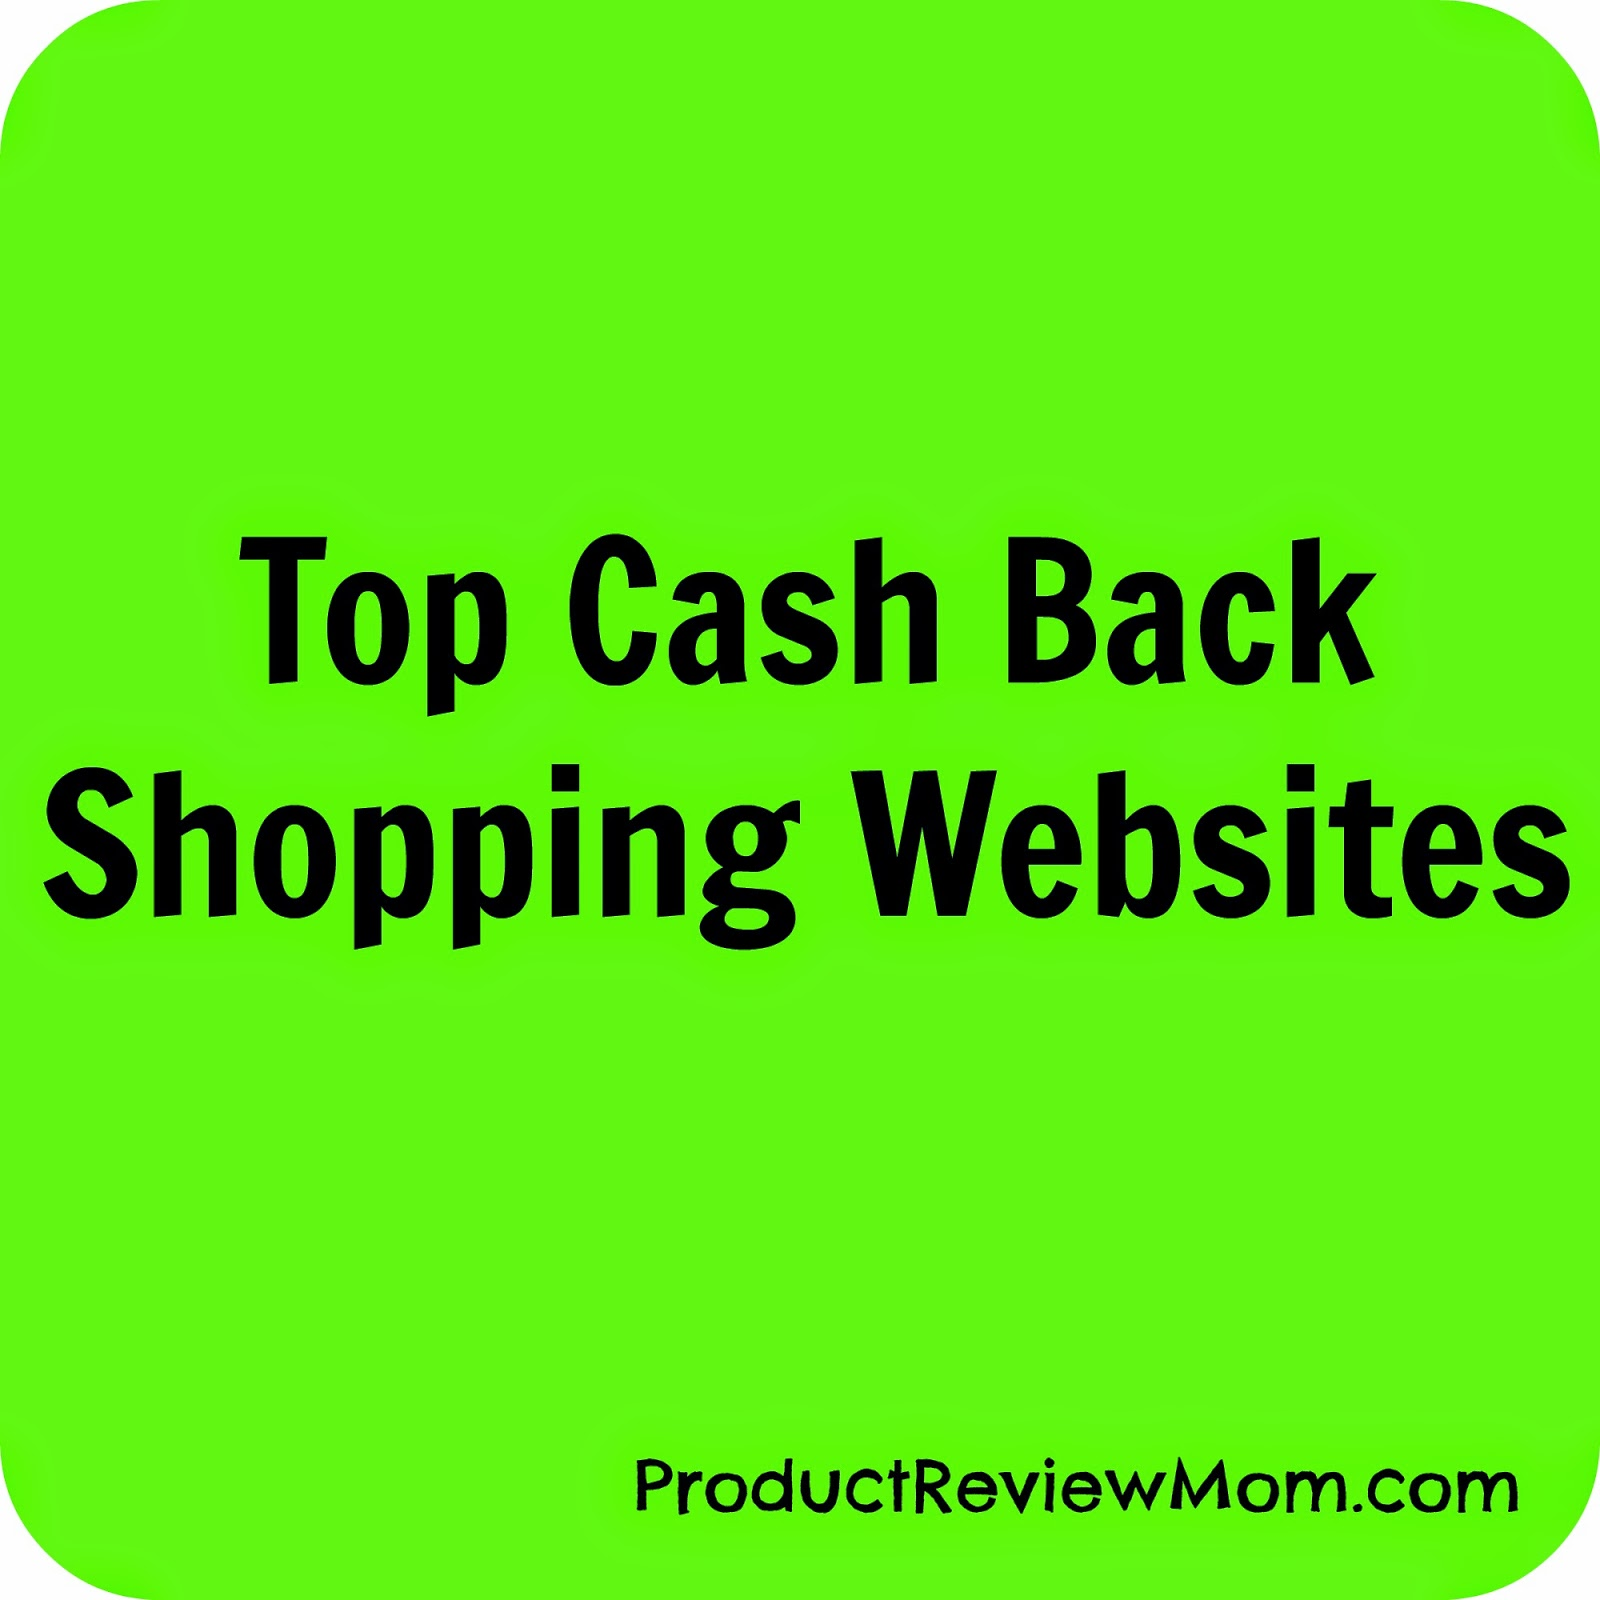 Top Cash Back Shopping Websites #SaveMoney via www.productreviewmom.com